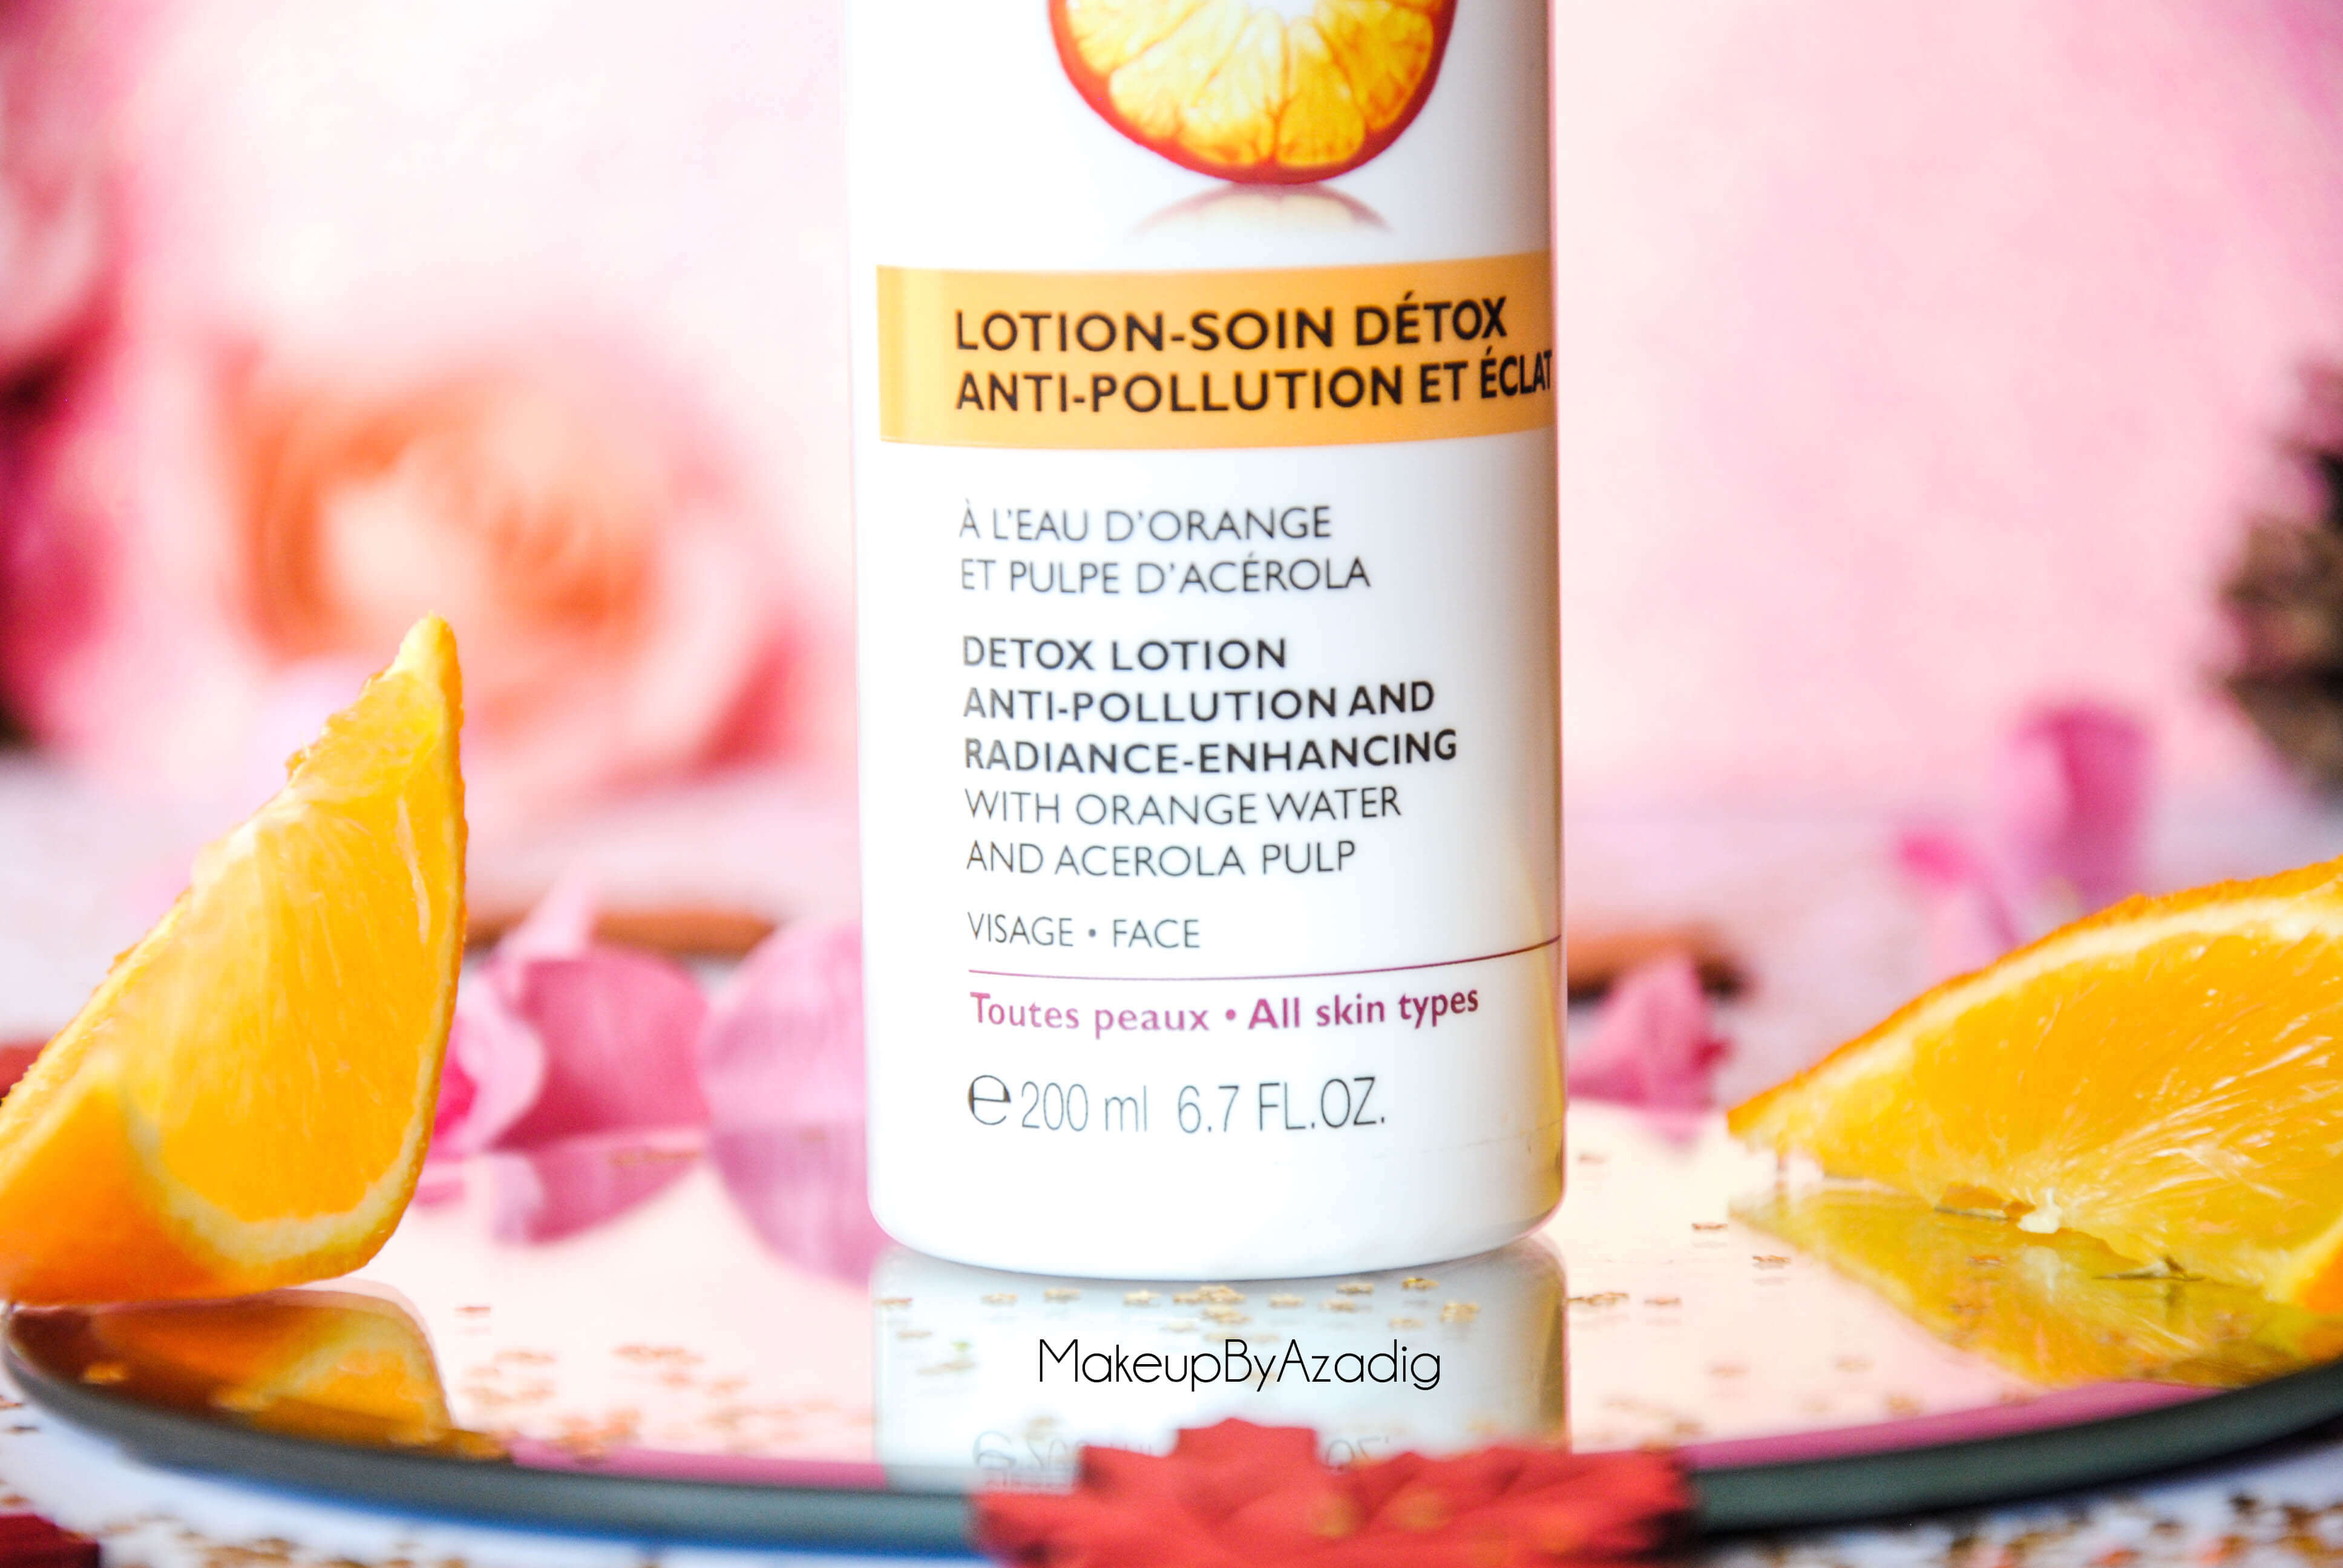 bio-beaute-nuxe-lotion-fluide-creme-contour-des-yeux-masque-orange-acerola-doctipharma-routine-du-matin-detox-eclat-soin-troyes-paris-makeupbyazadig-blog-revue-review-anti-pollution-partenariat